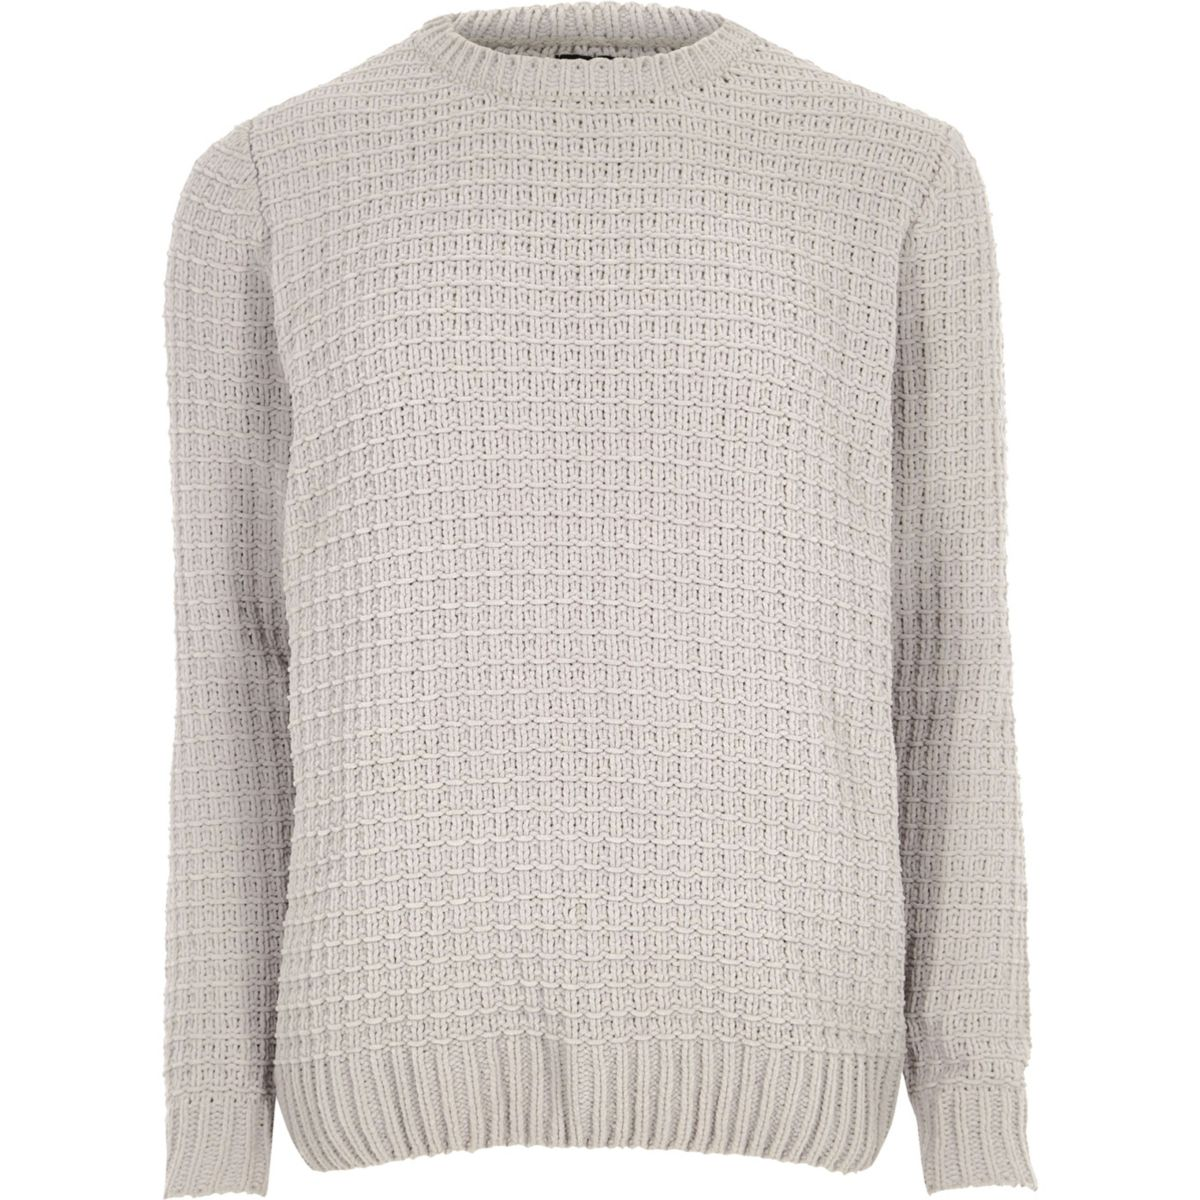 Light grey textured chenille knit jumper